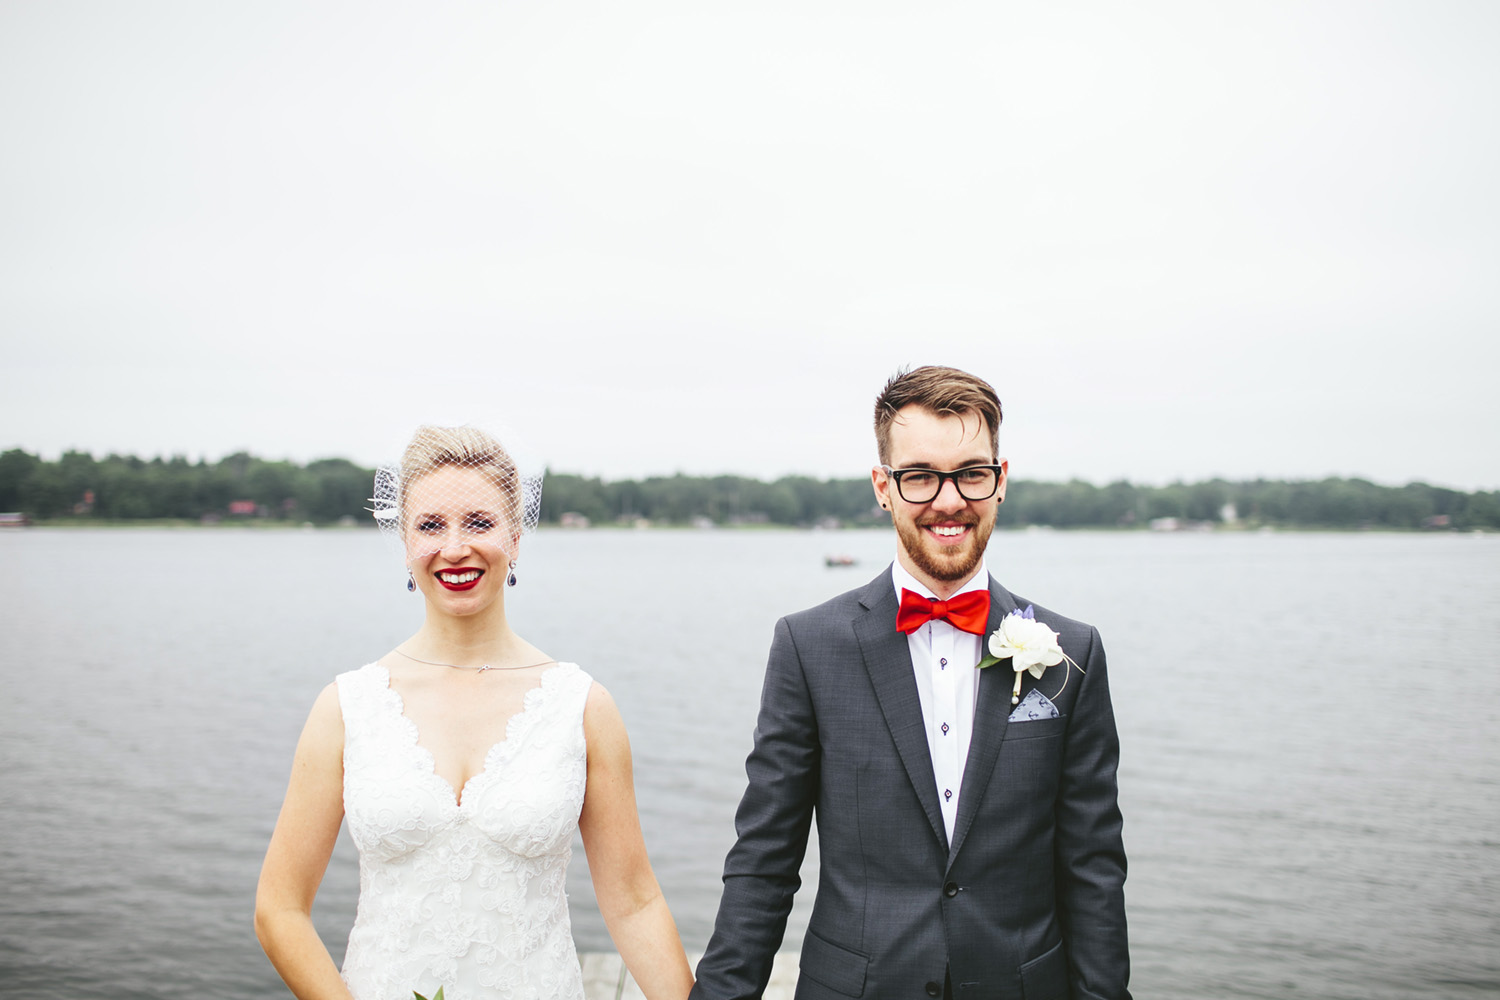 Brandon_werth_Sweden_wedding_Photographer_baltic_sea_48.jpg